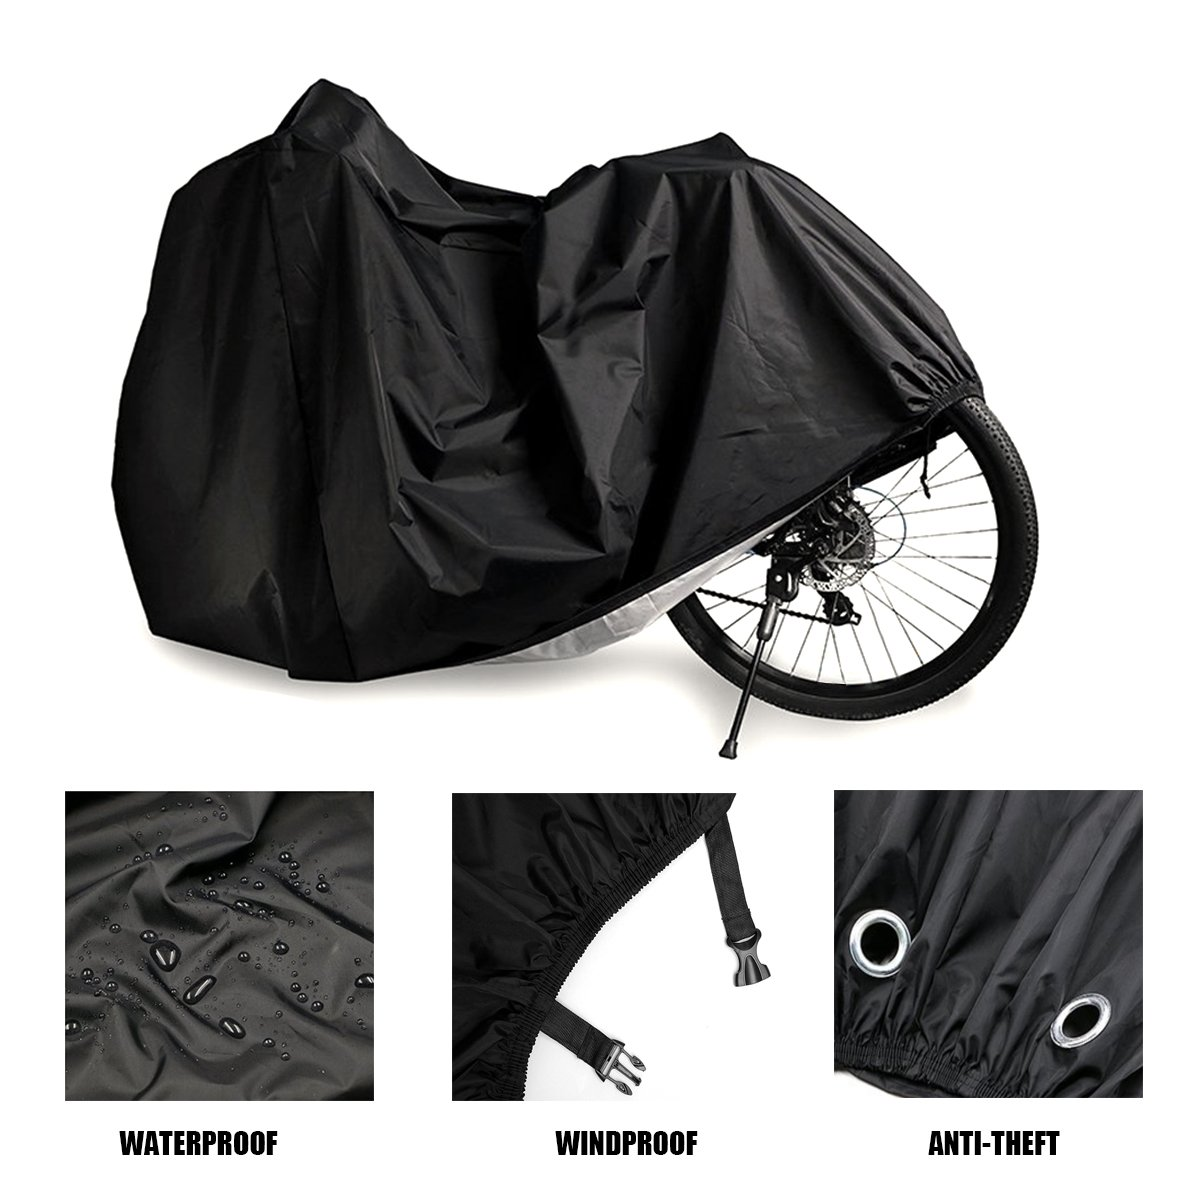 AIMUHO Bike Cover 210D Oxford Fabric Waterproof Bicycle Cover with Lock Holes, Outdoor Bicycle Rain Cover UV Protection for All Weather Conditions/XL Size by AIMUHO (Image #2)